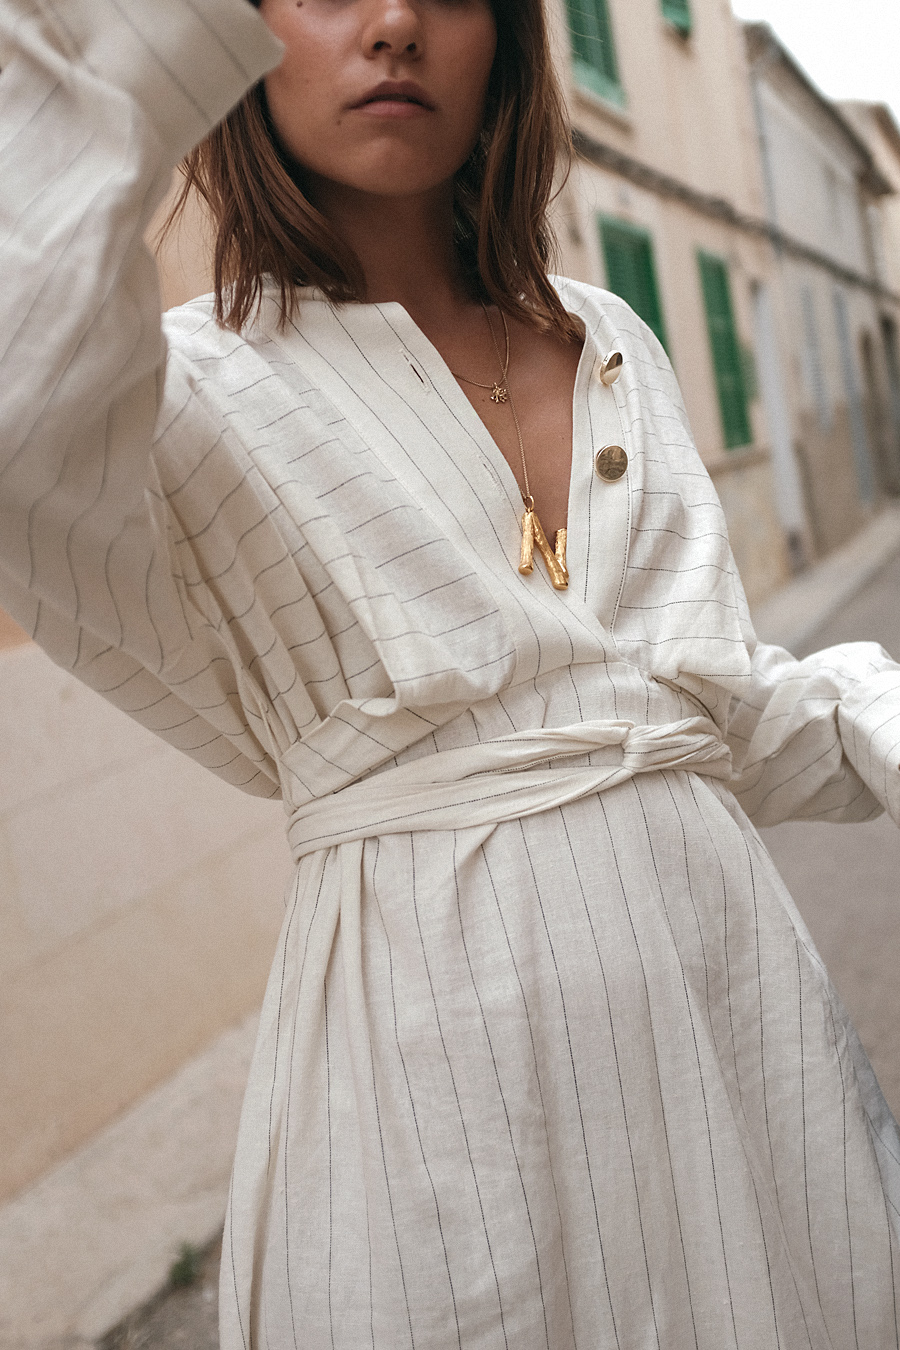 Nisi is wearing: The Row Ascot bag,  Céline Alphabet necklace, Striped dress, Black strappy sandals, Coral necklace, Gold pearl earring